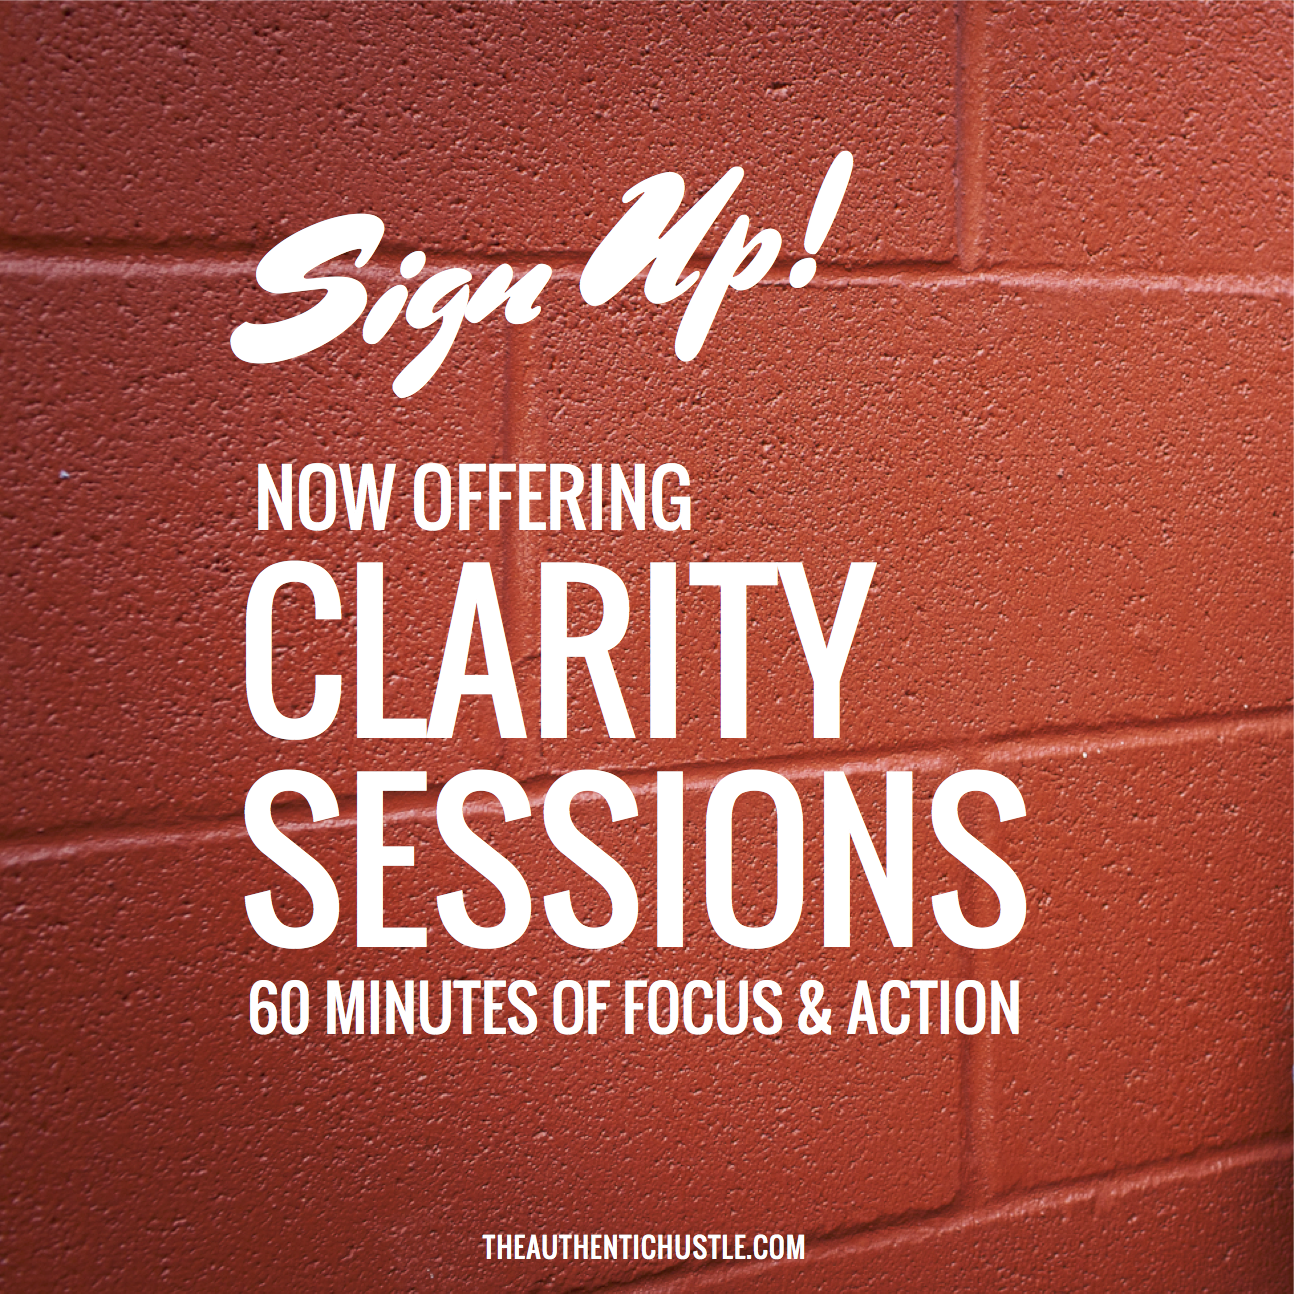 Clarity Session with Evi D.